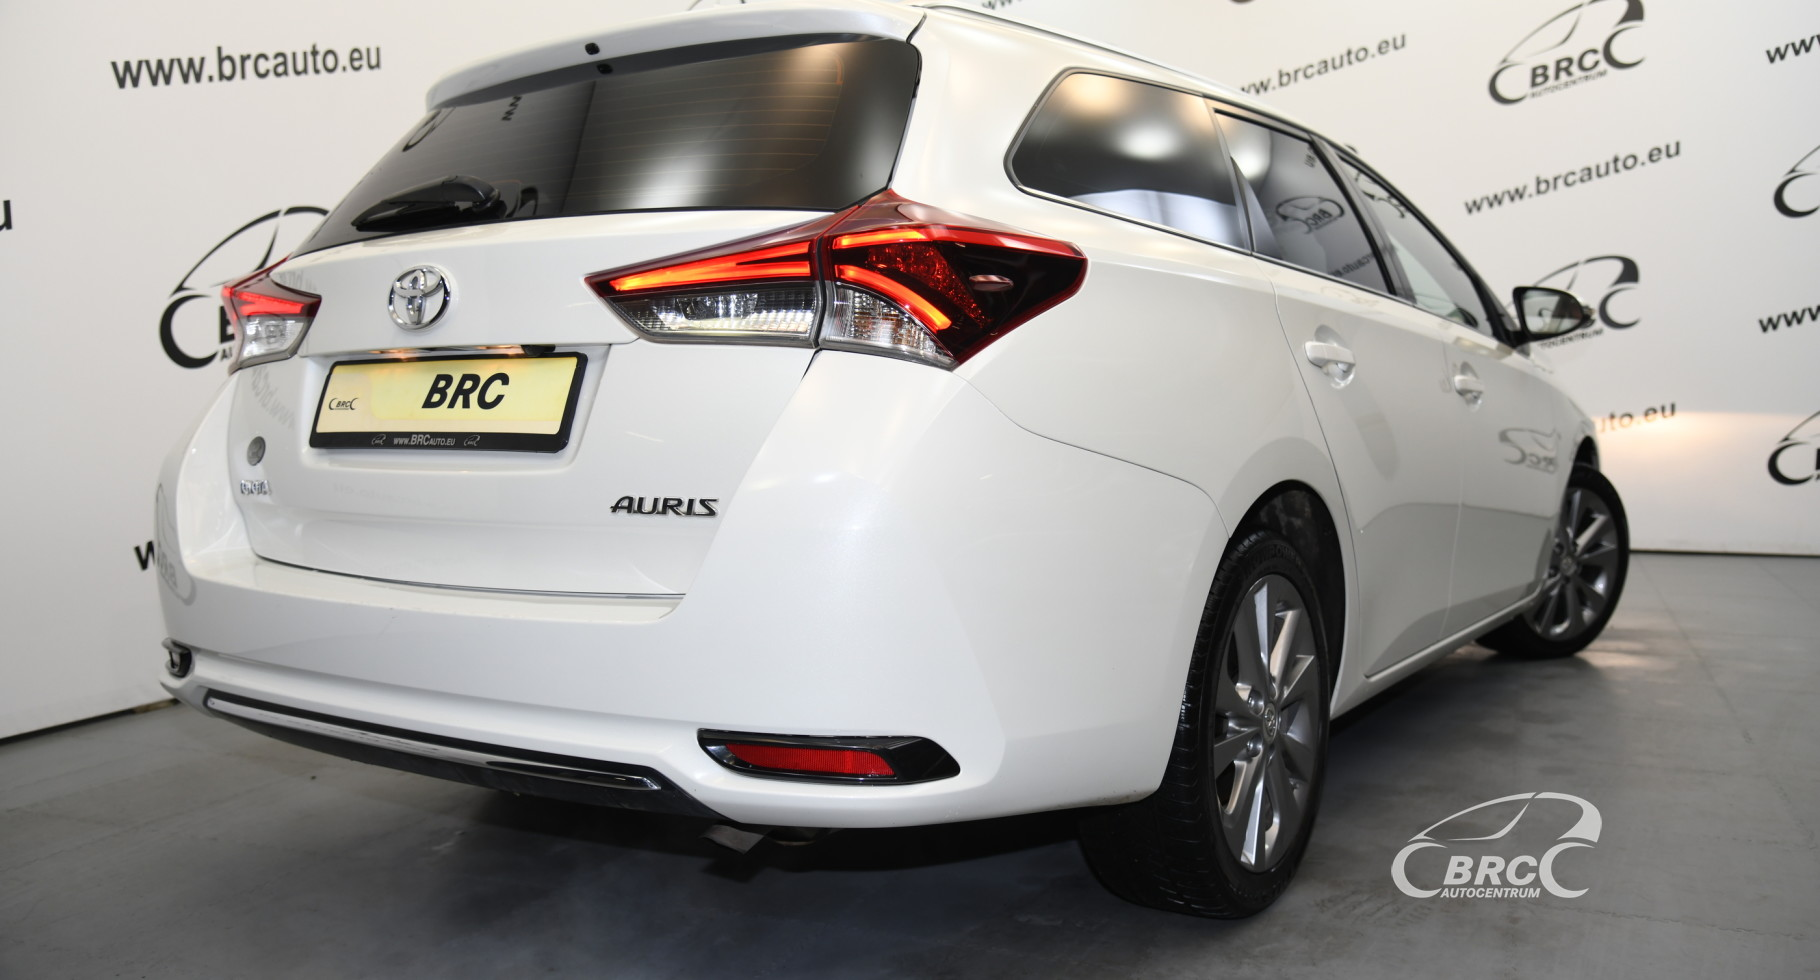 Toyota Auris 1.6i Touring Sports Automatas